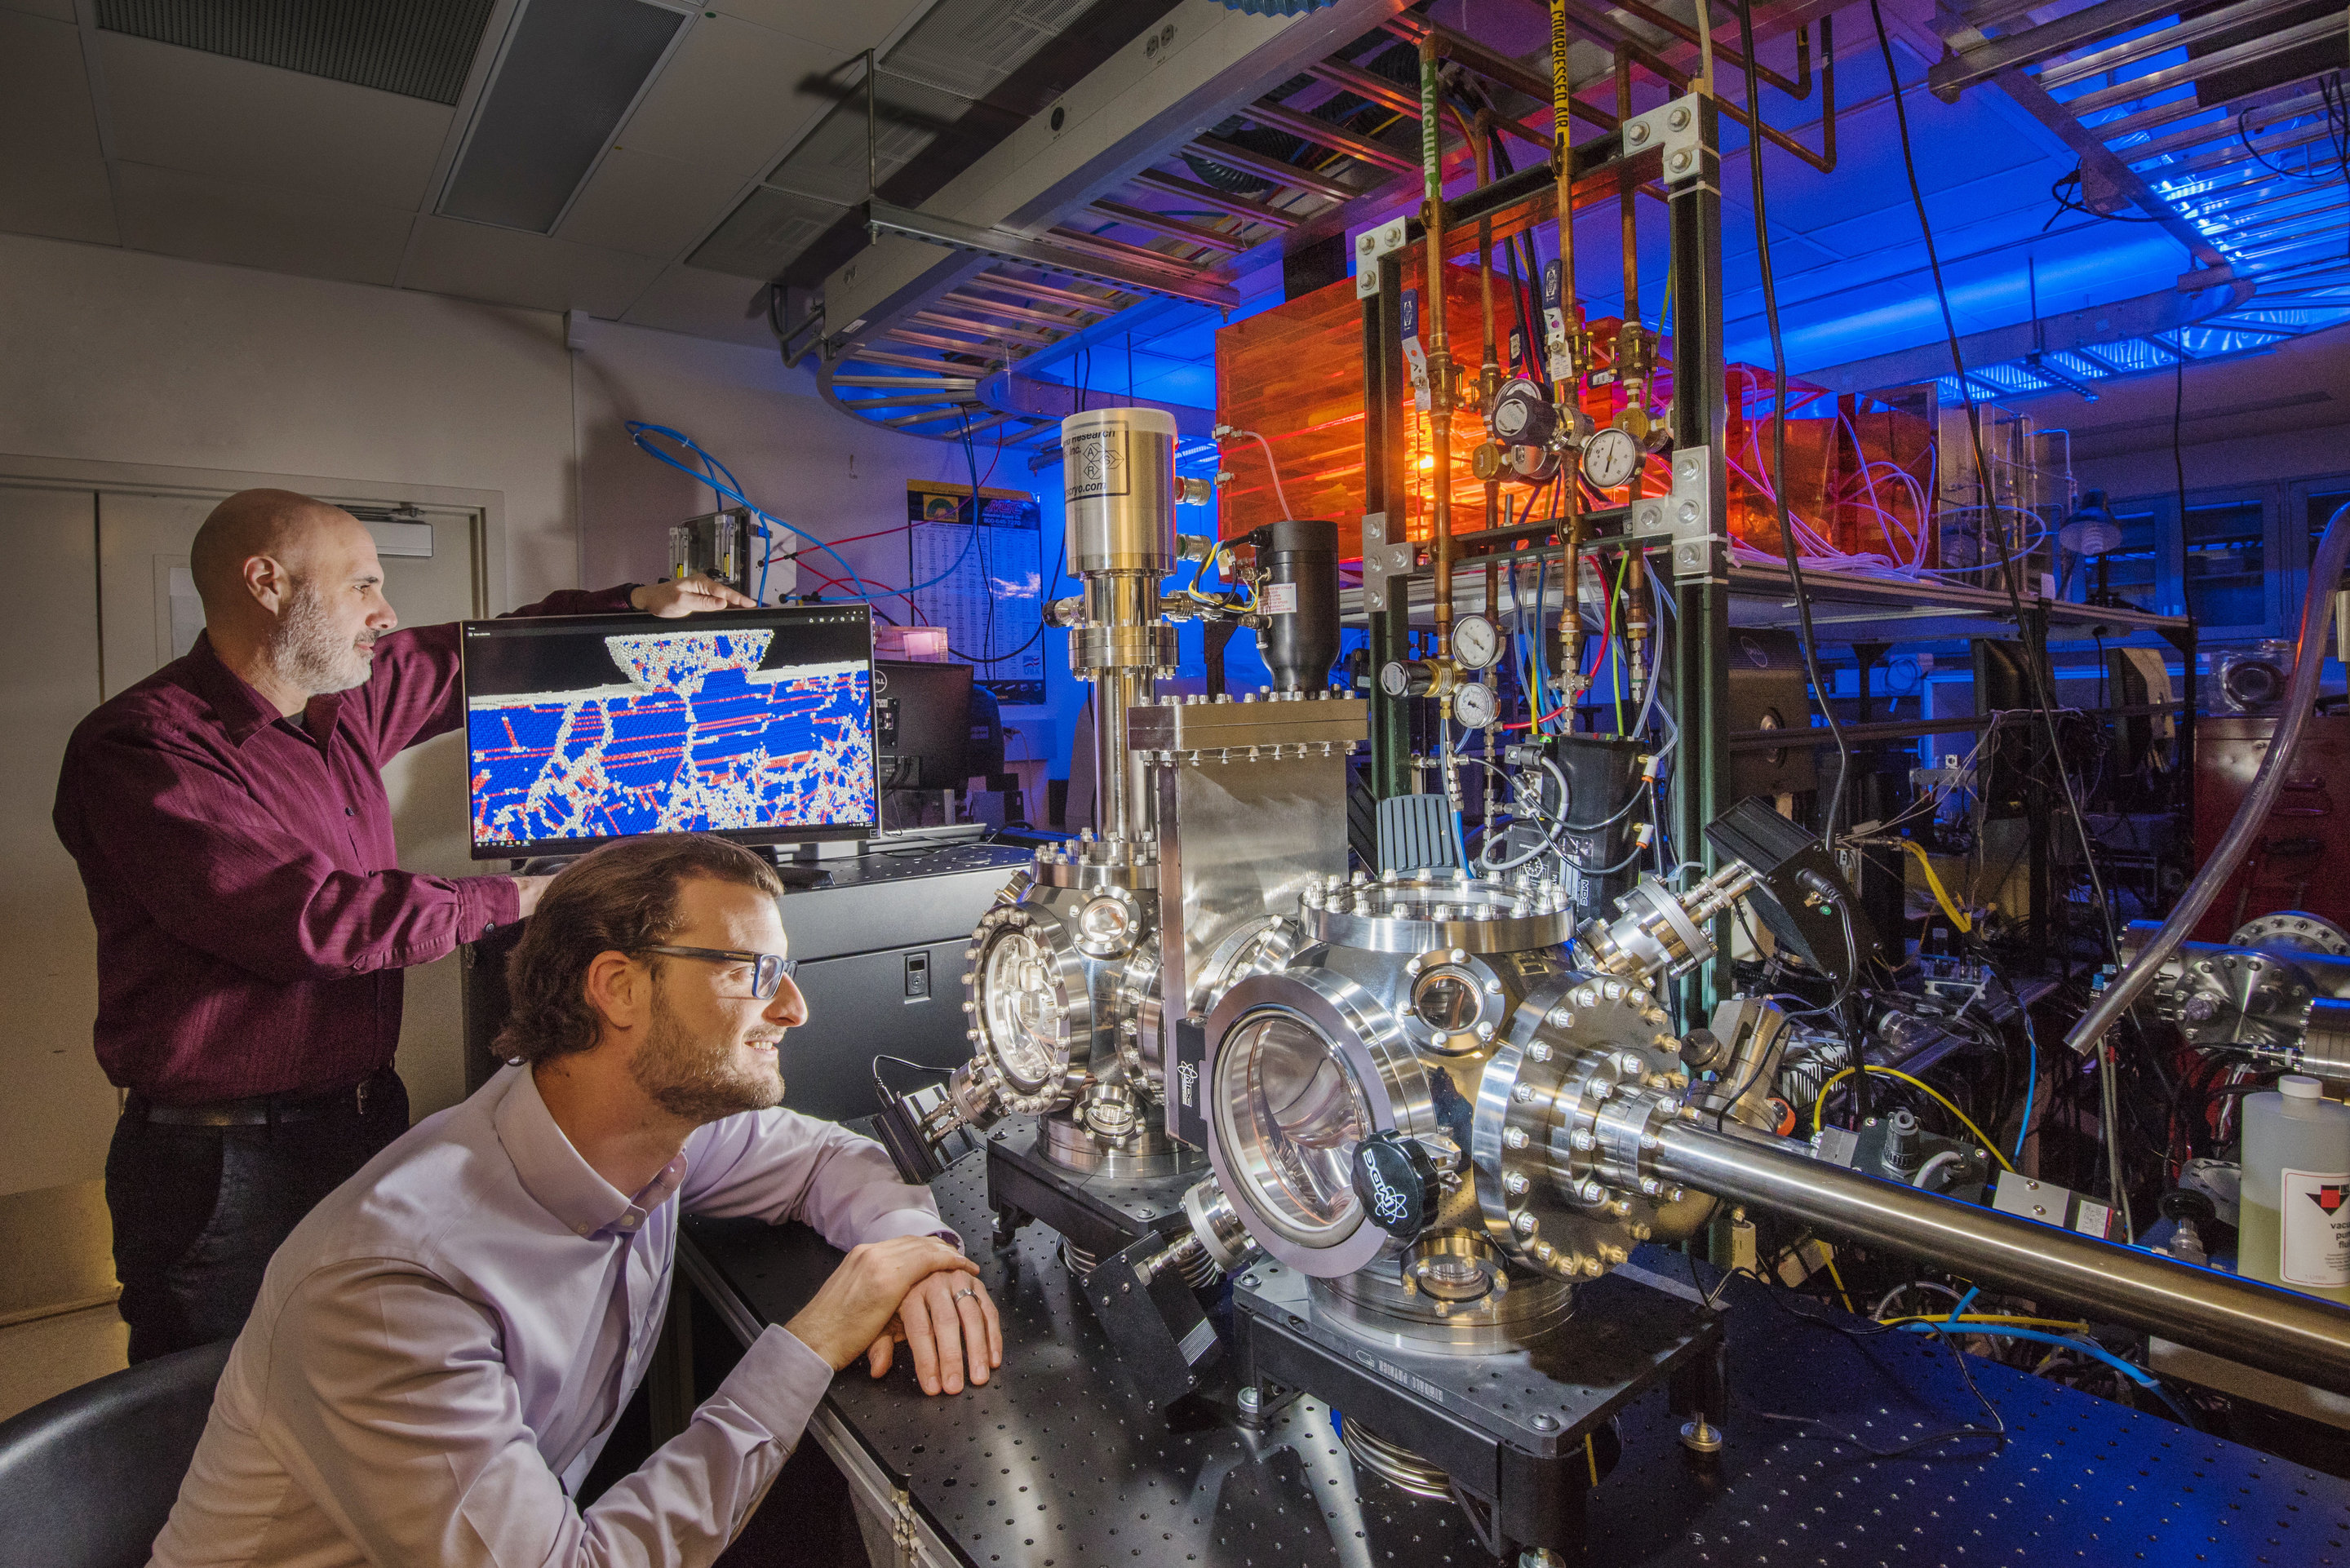 Engineers create most wear-resistant metal alloy in the world